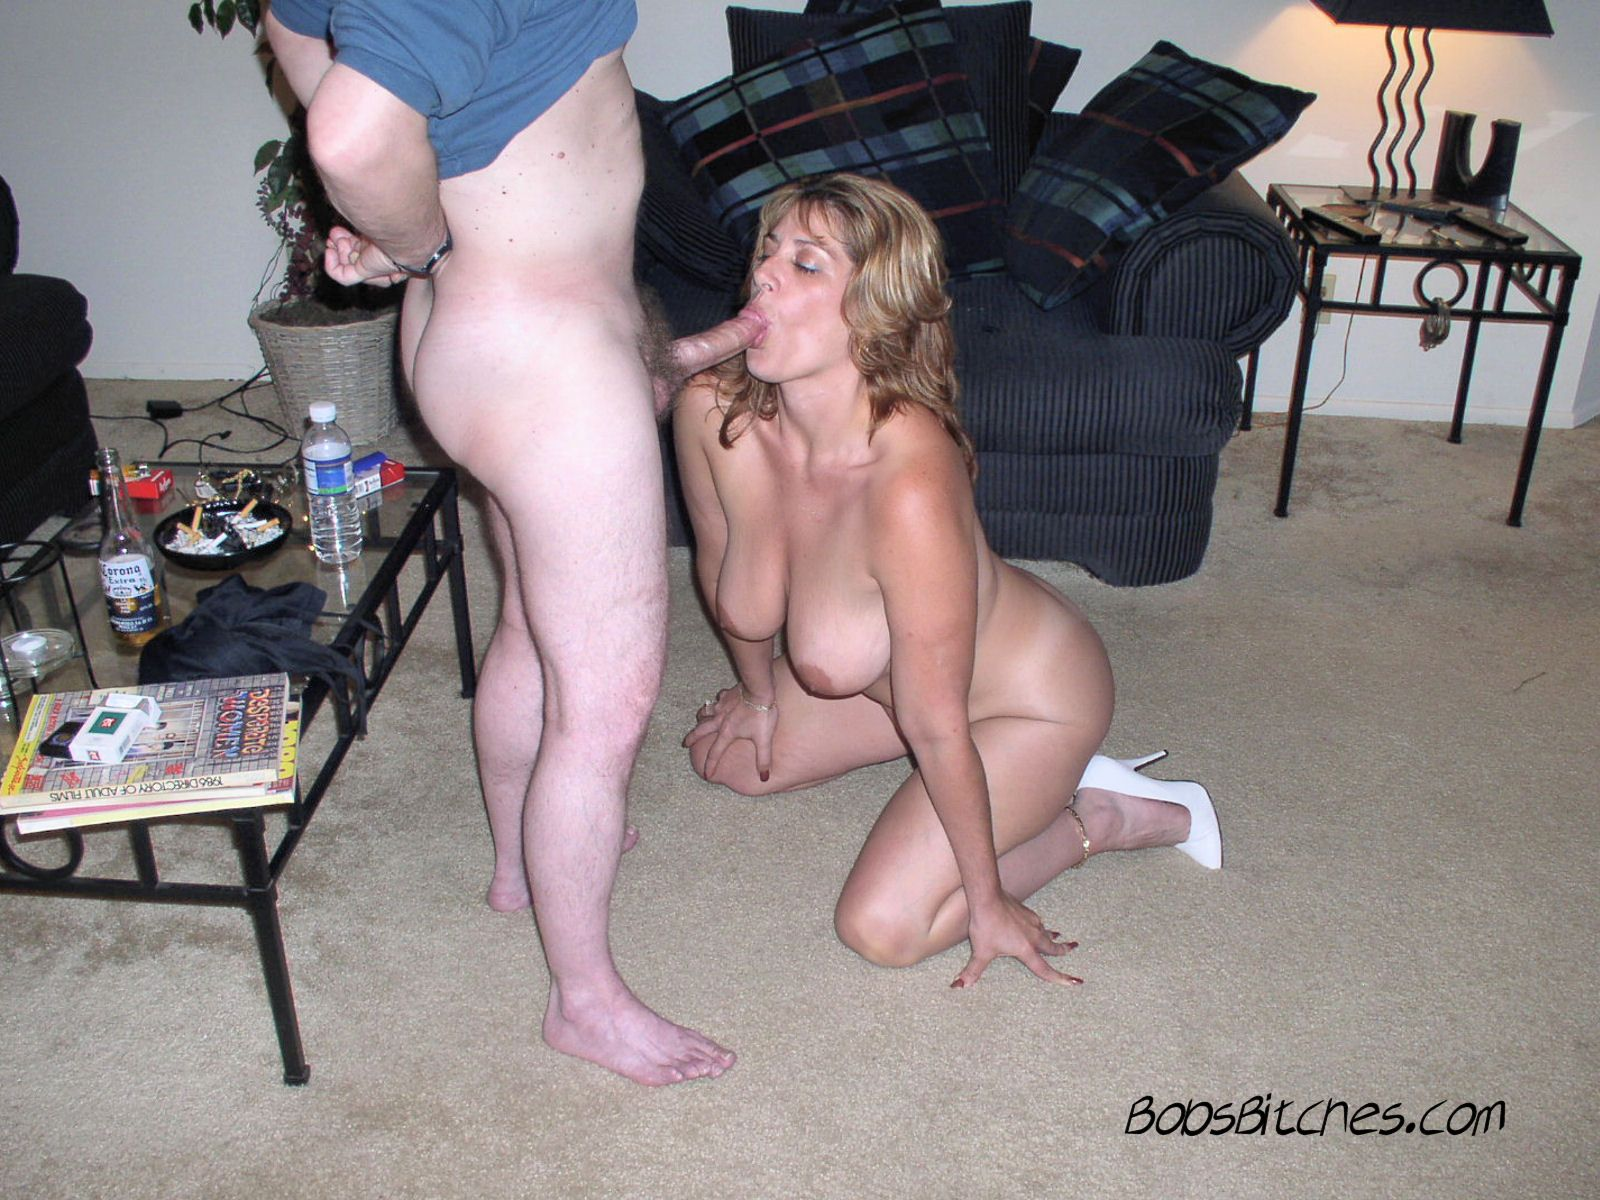 Big tits swinger, and wife, Ashley, gets on her knees naked to blow Bob. Wearing high heels only.